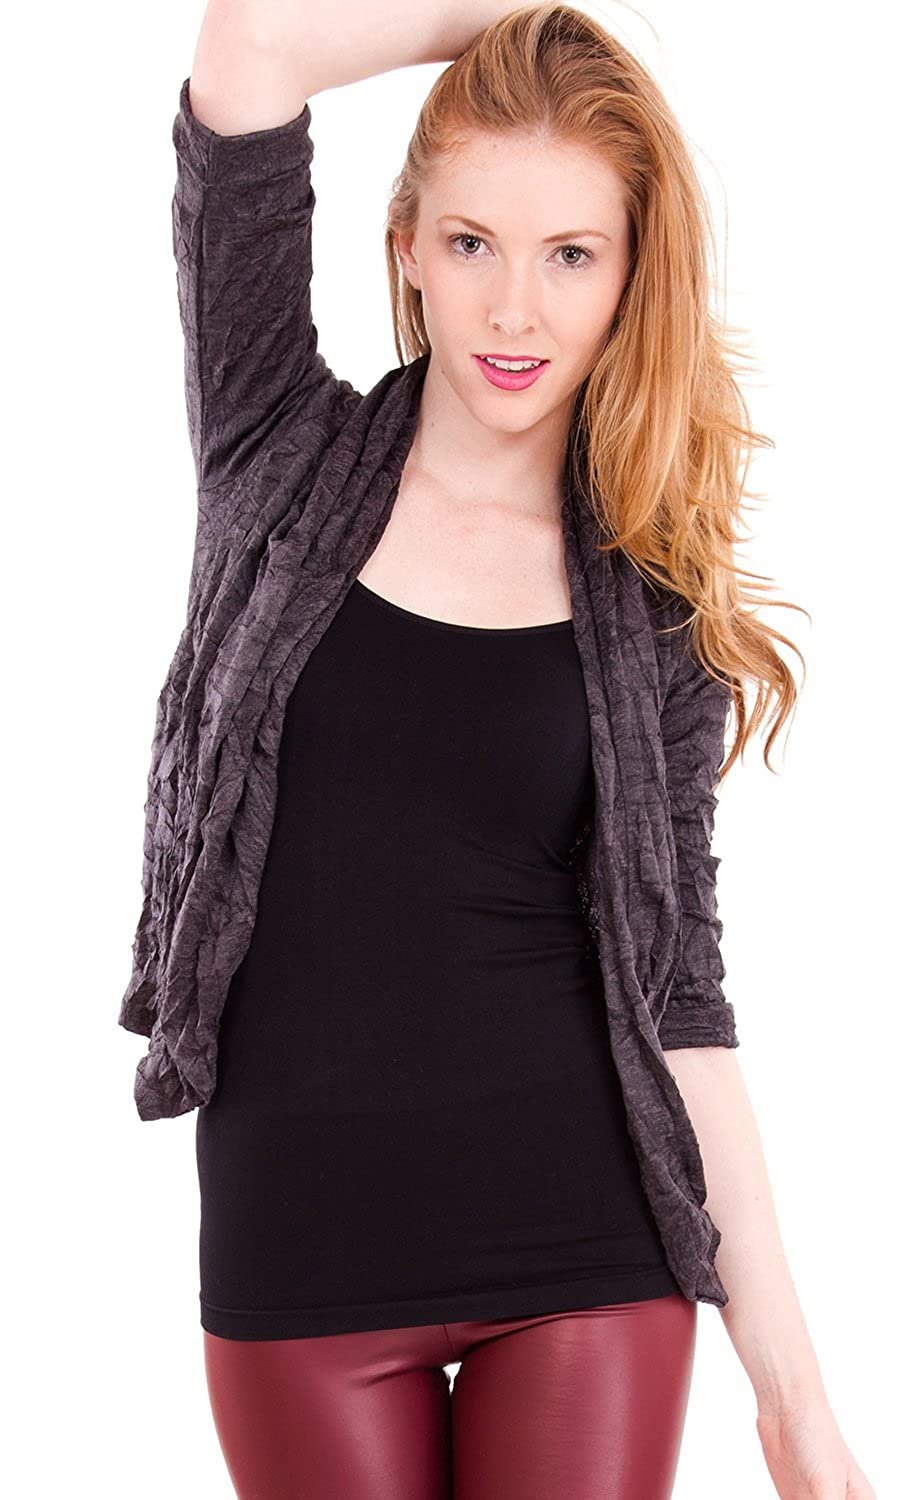 Clothes Effect Women's Crinkle Textured Half Sleeve Short Cardigan